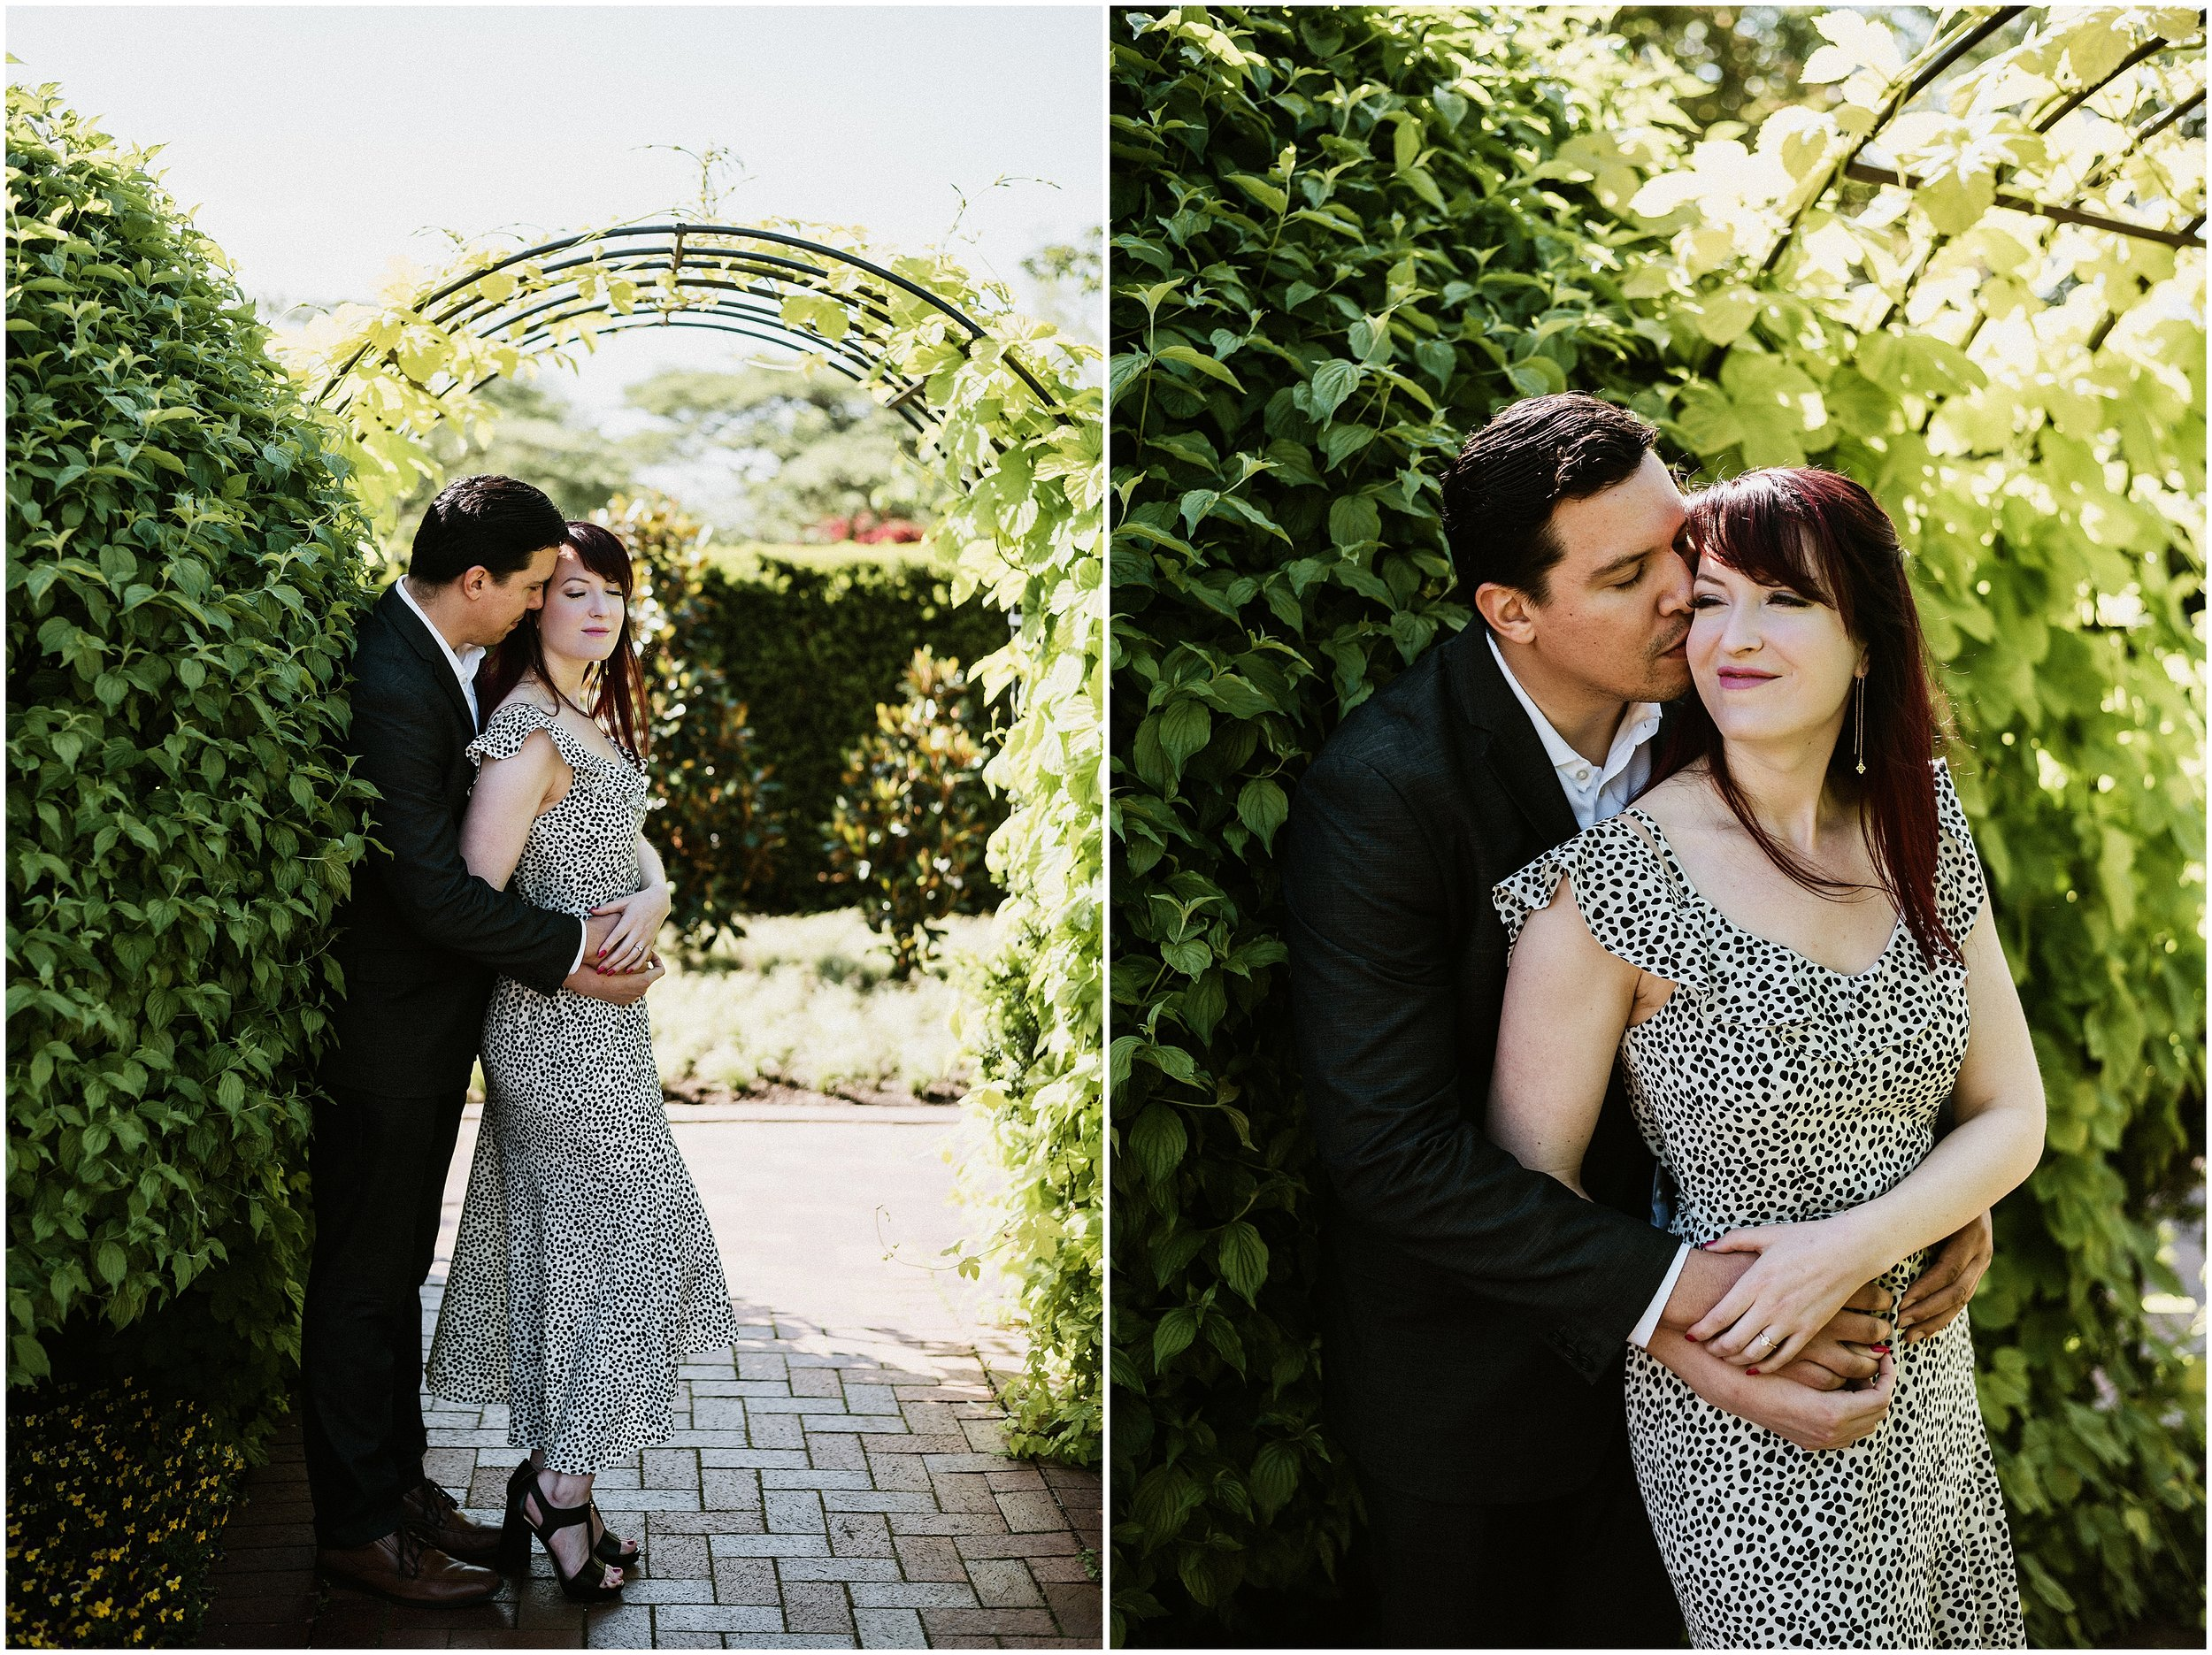 Candace Sims Photography |Sarah And Marcel | Chicago Botanic Garden Engagement Session | Chicago, IL